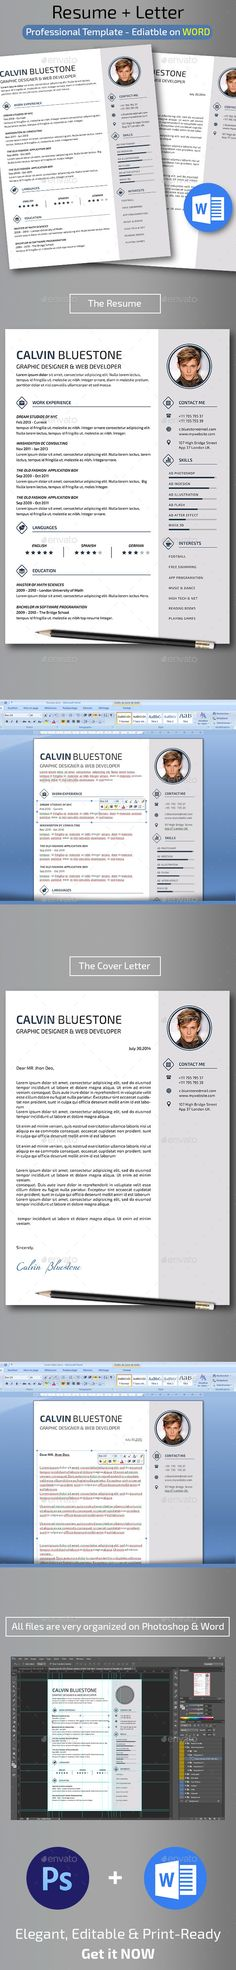 How To Make A Resume In Word Resume Template  Cv Template For Word  Professional Resume Design .